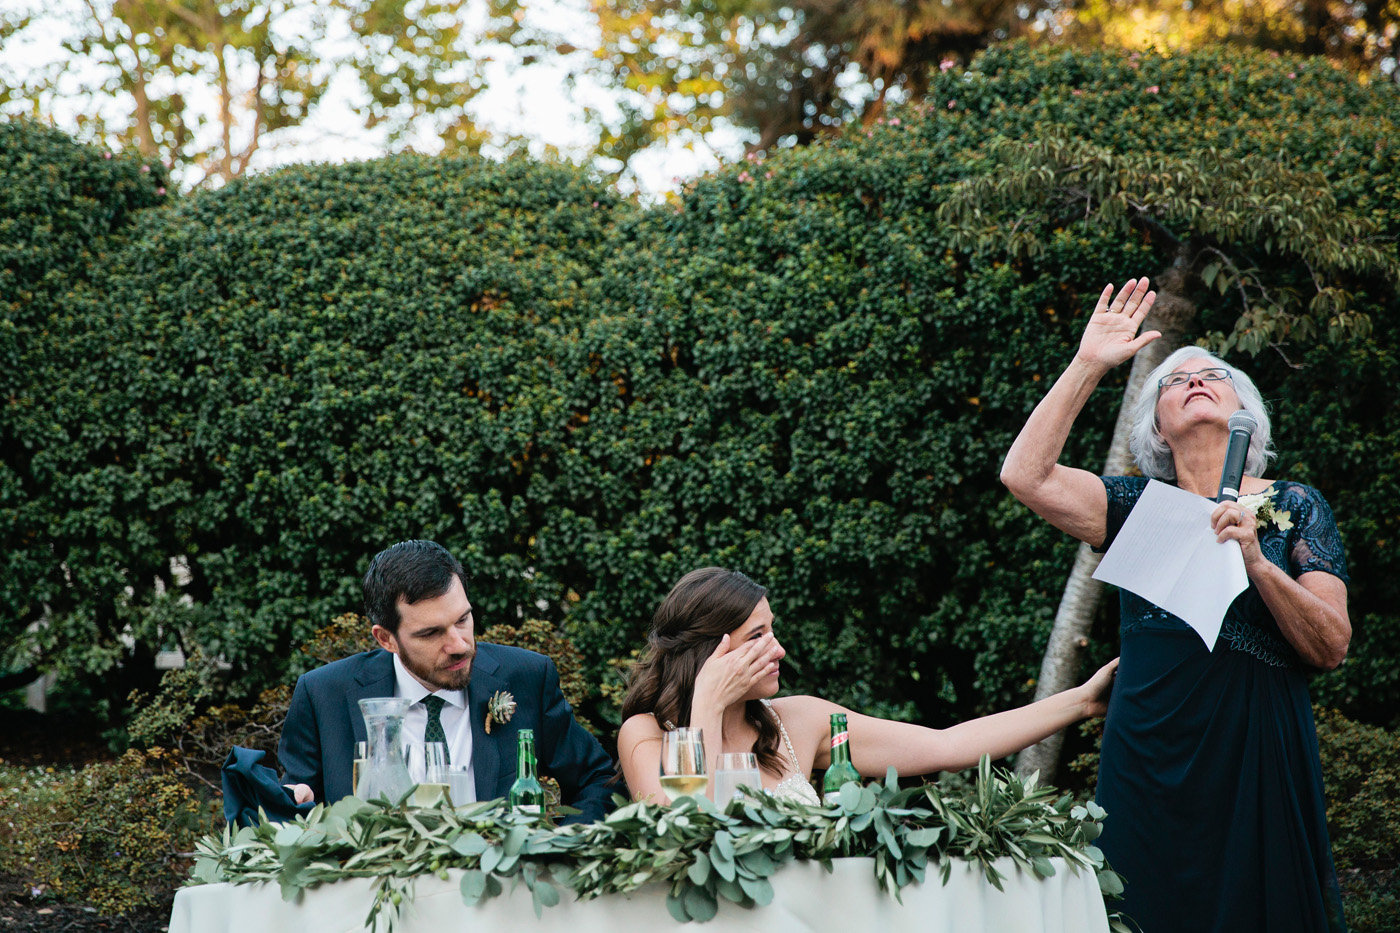 SanFranciscoWeddingPhotographer_009.JPG